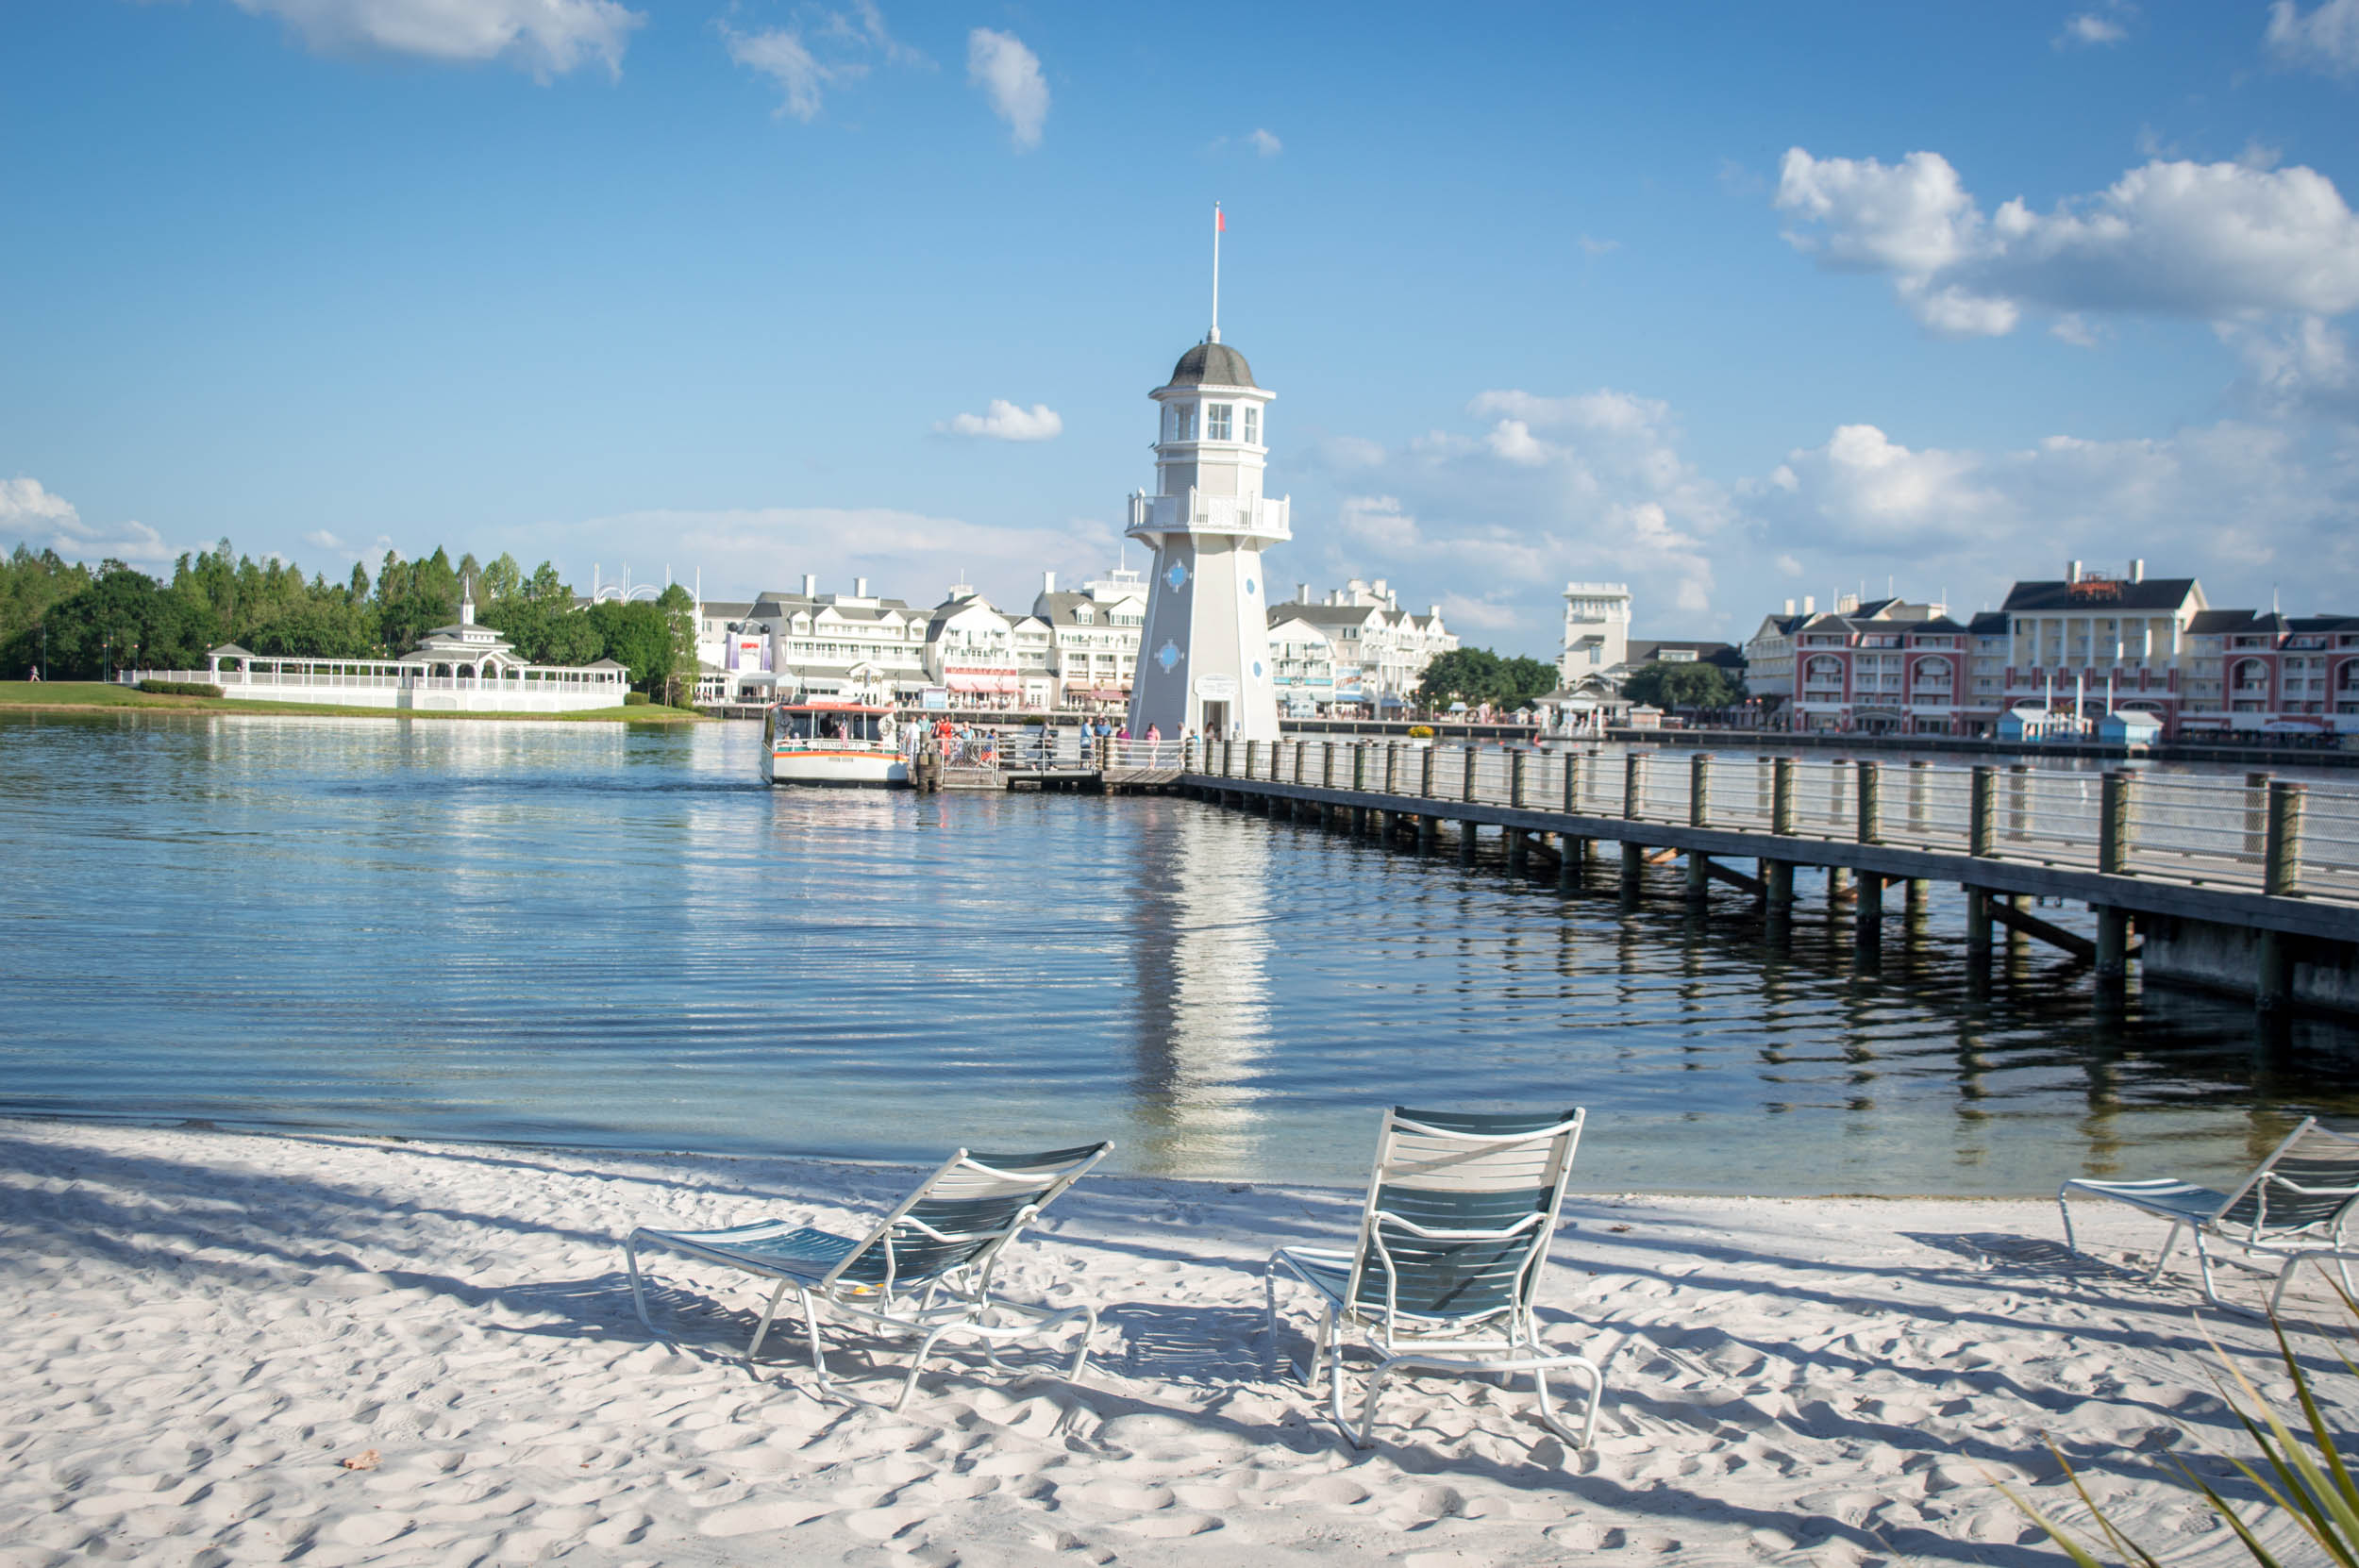 Disney' Boardwalk